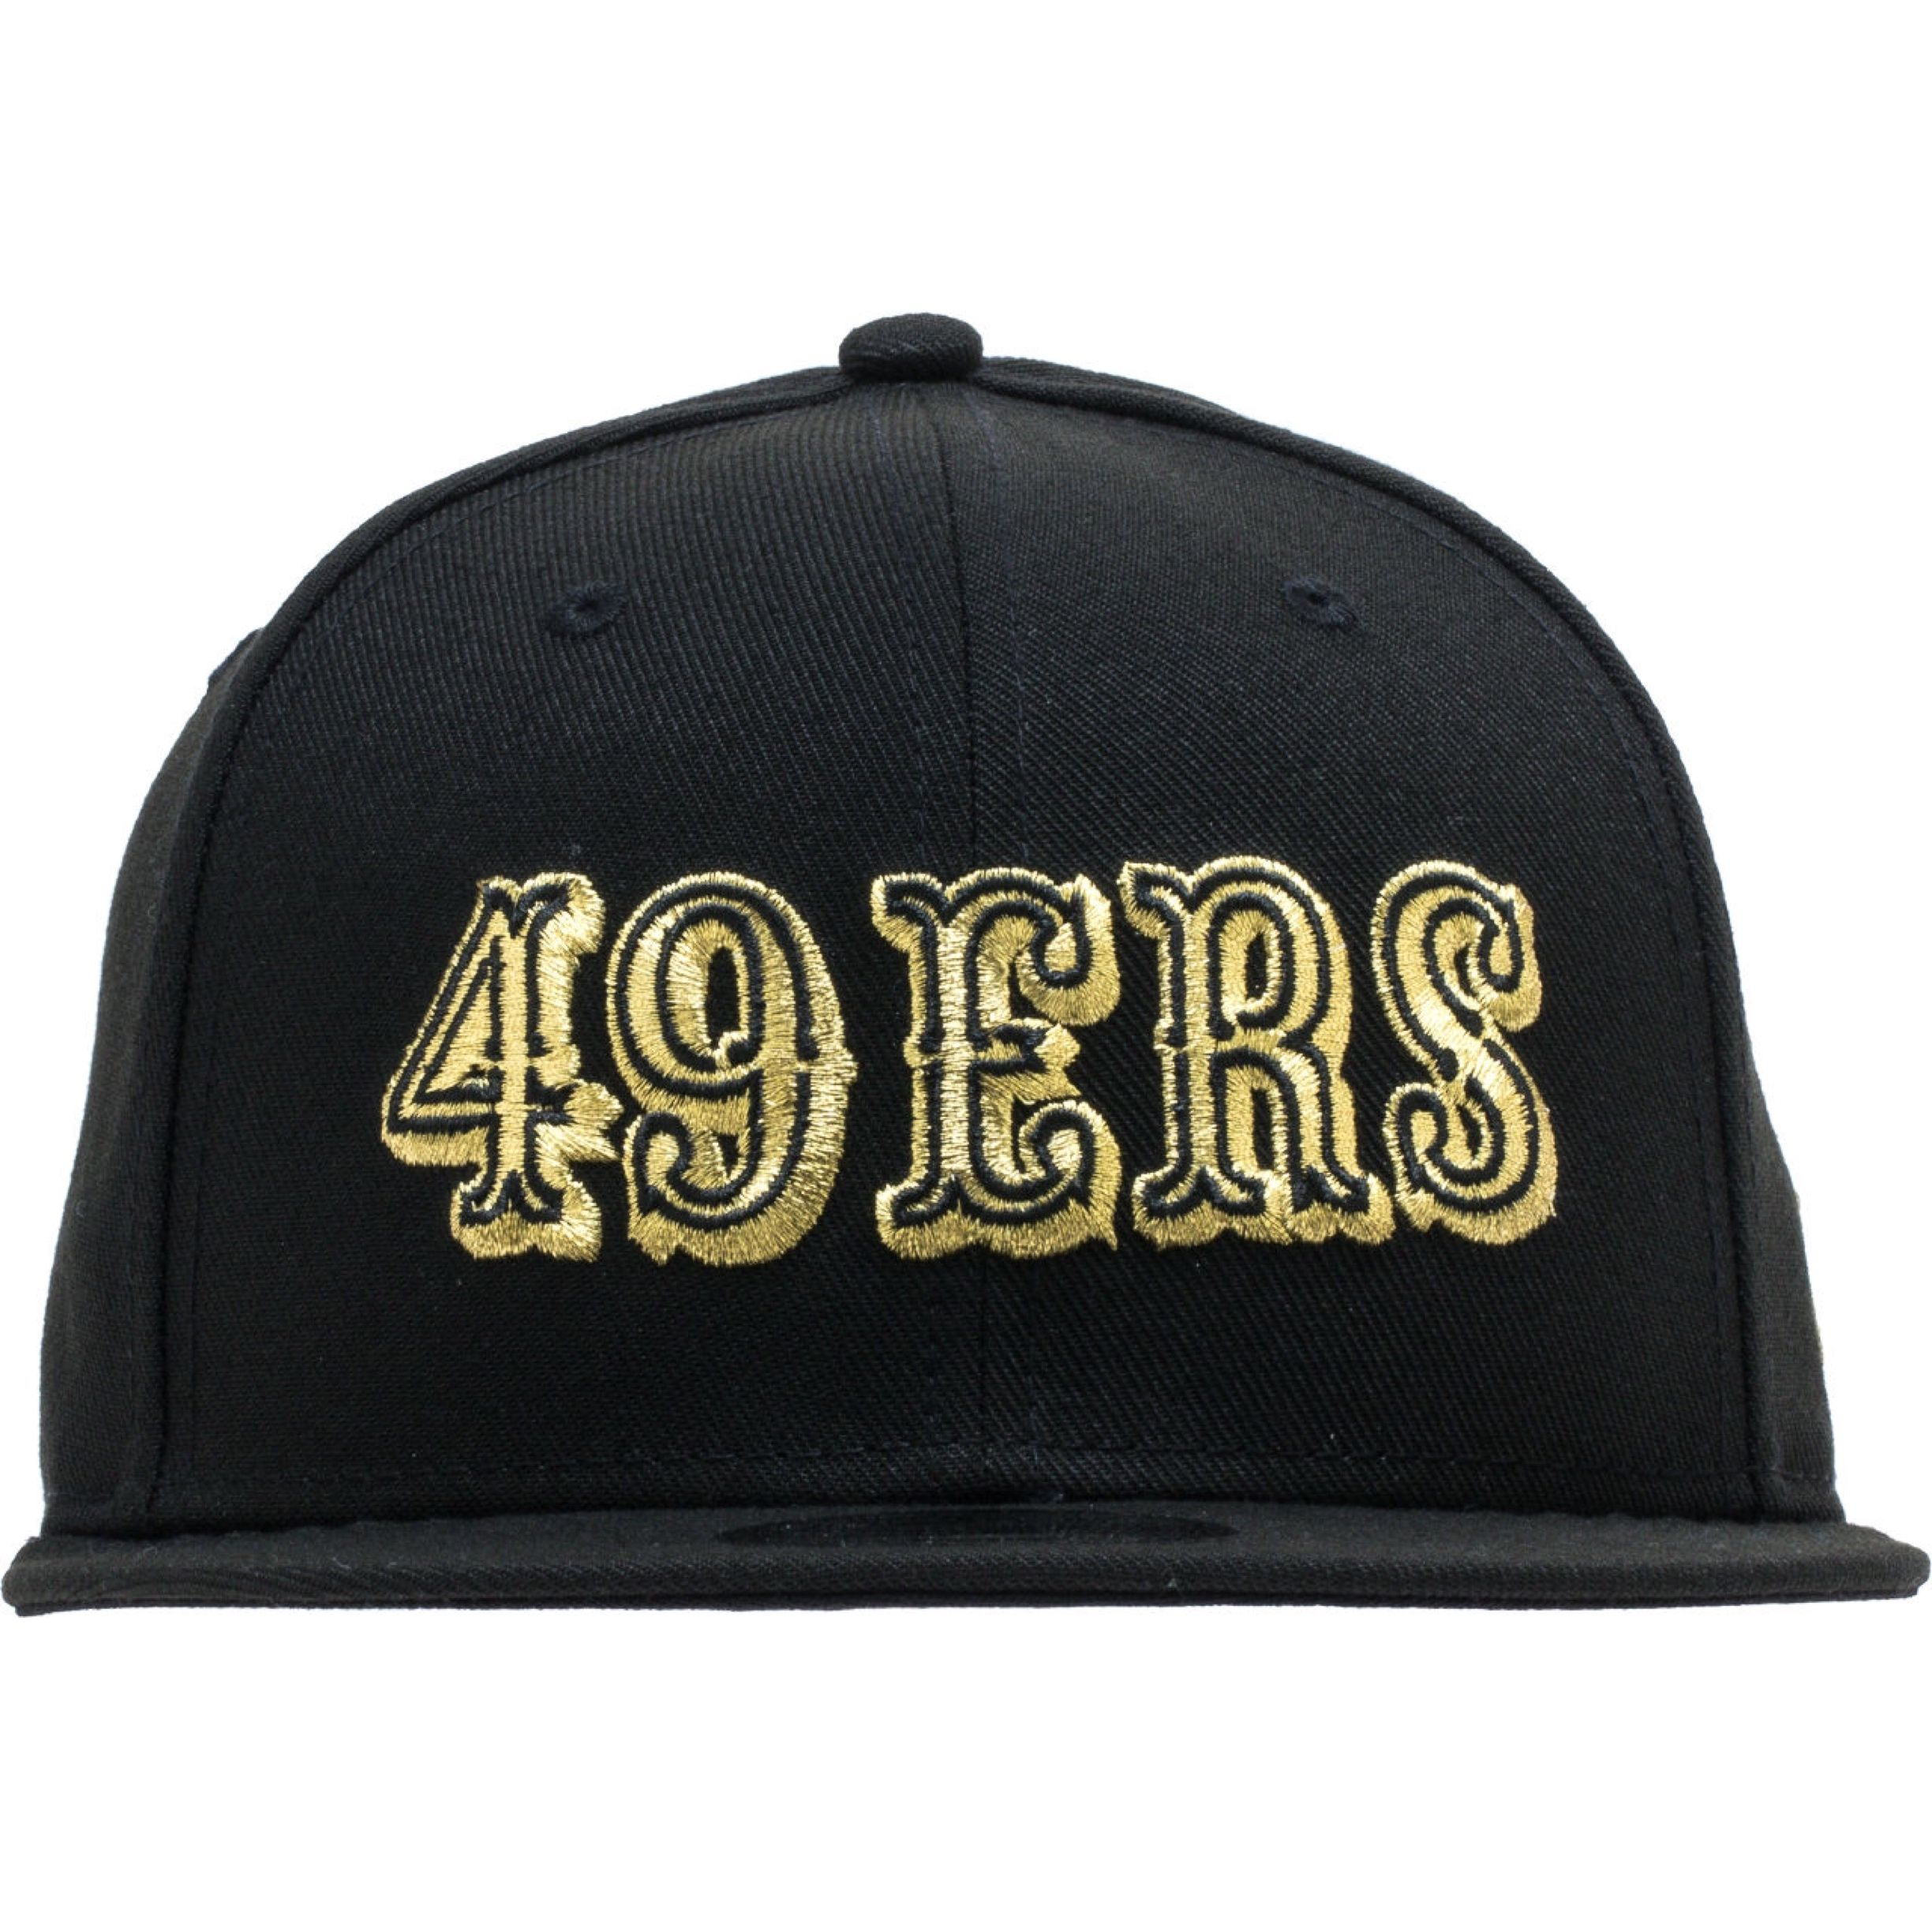 Exclusive New Era 59Fifty 49ers 72 Logo Hat - Red a6b21111ad2b